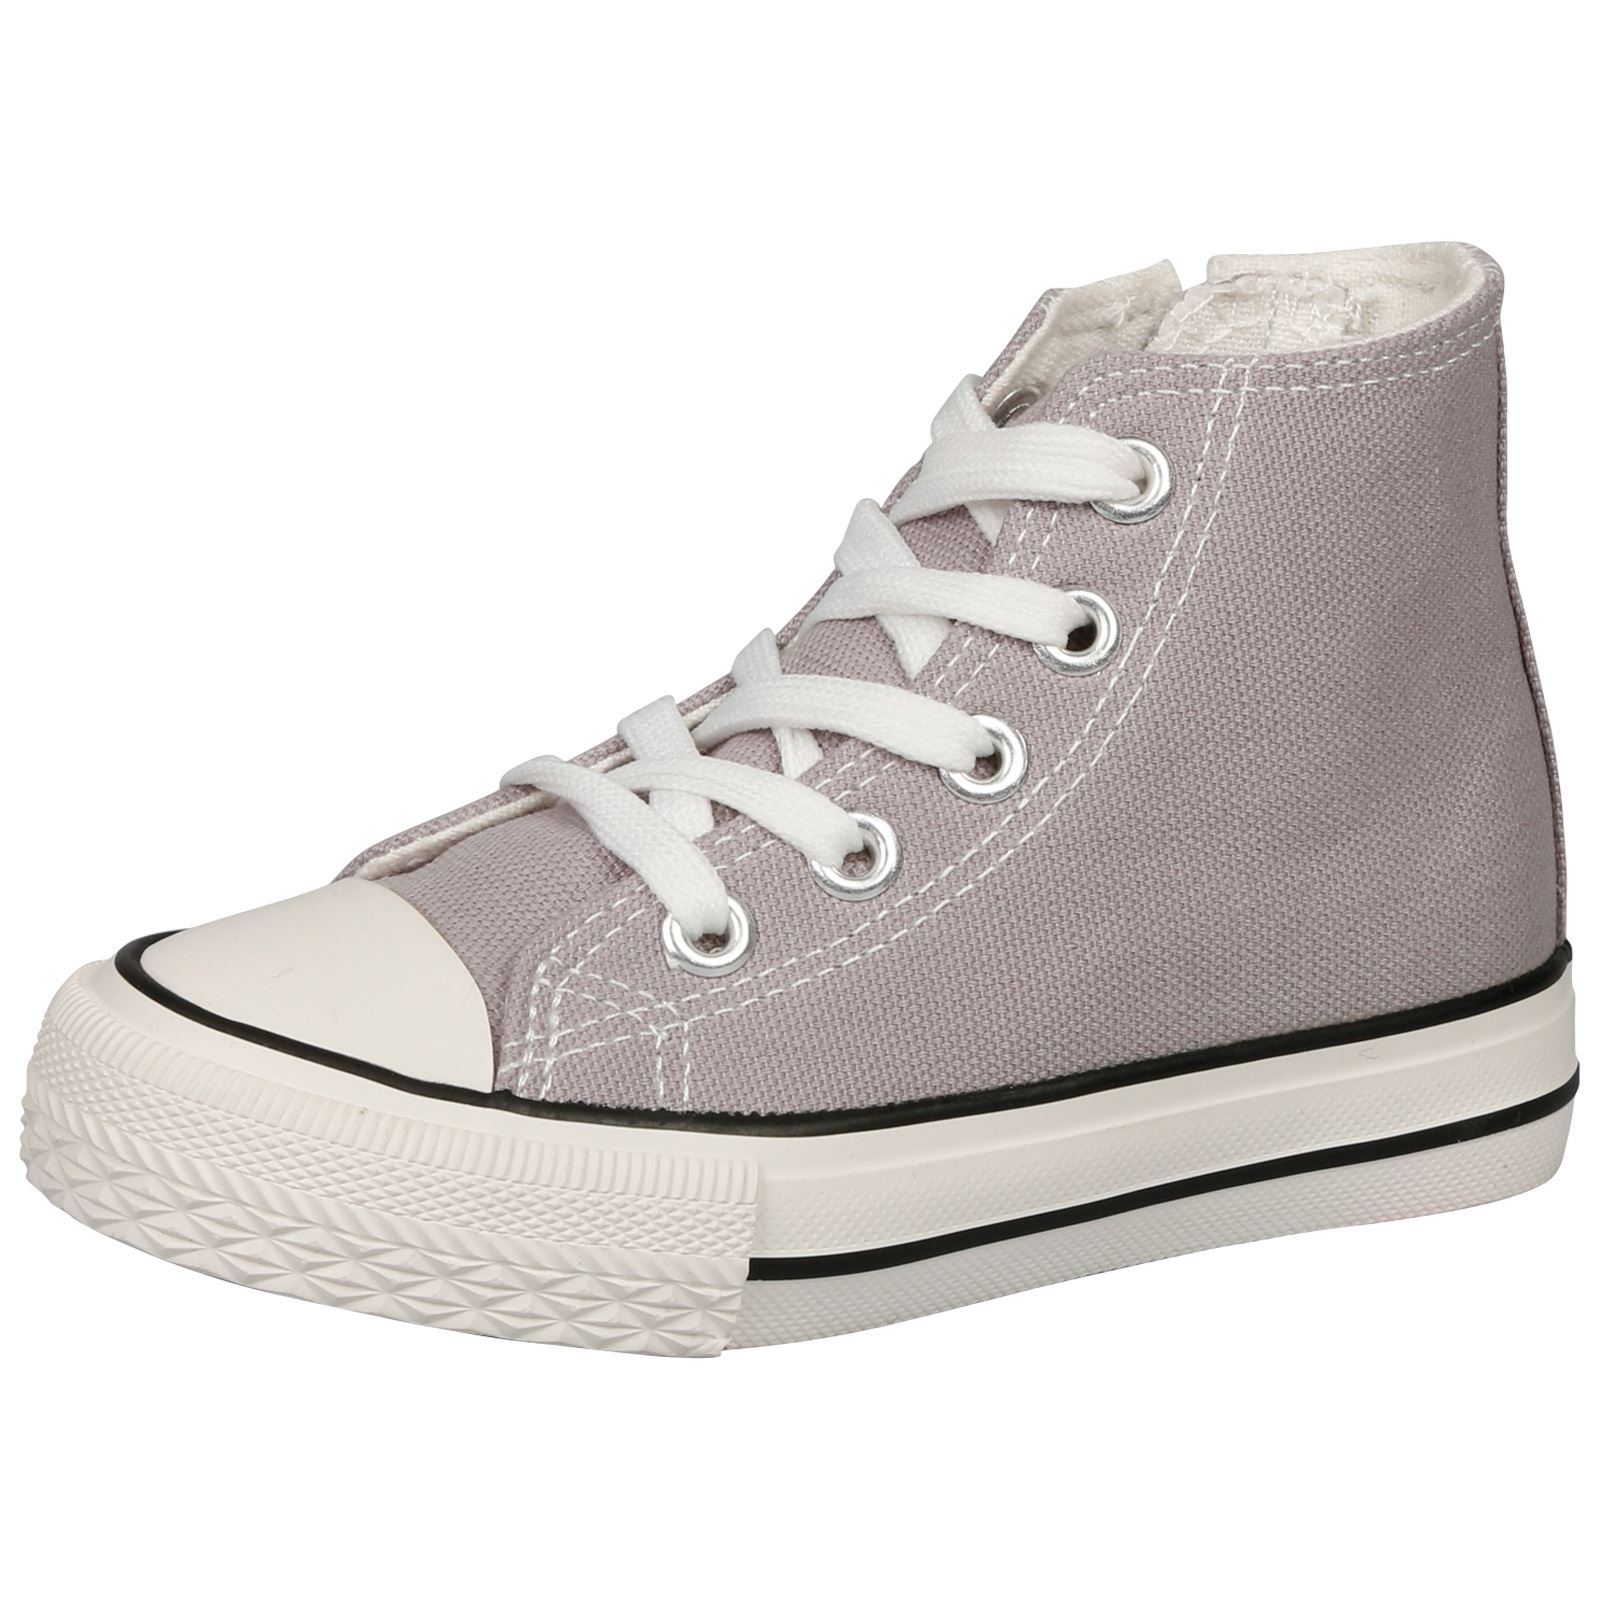 NEW GIRLS SHOES KIDS CANVAS TRAINERS FLATFROM FLATS LACE UP ZIP UP ...